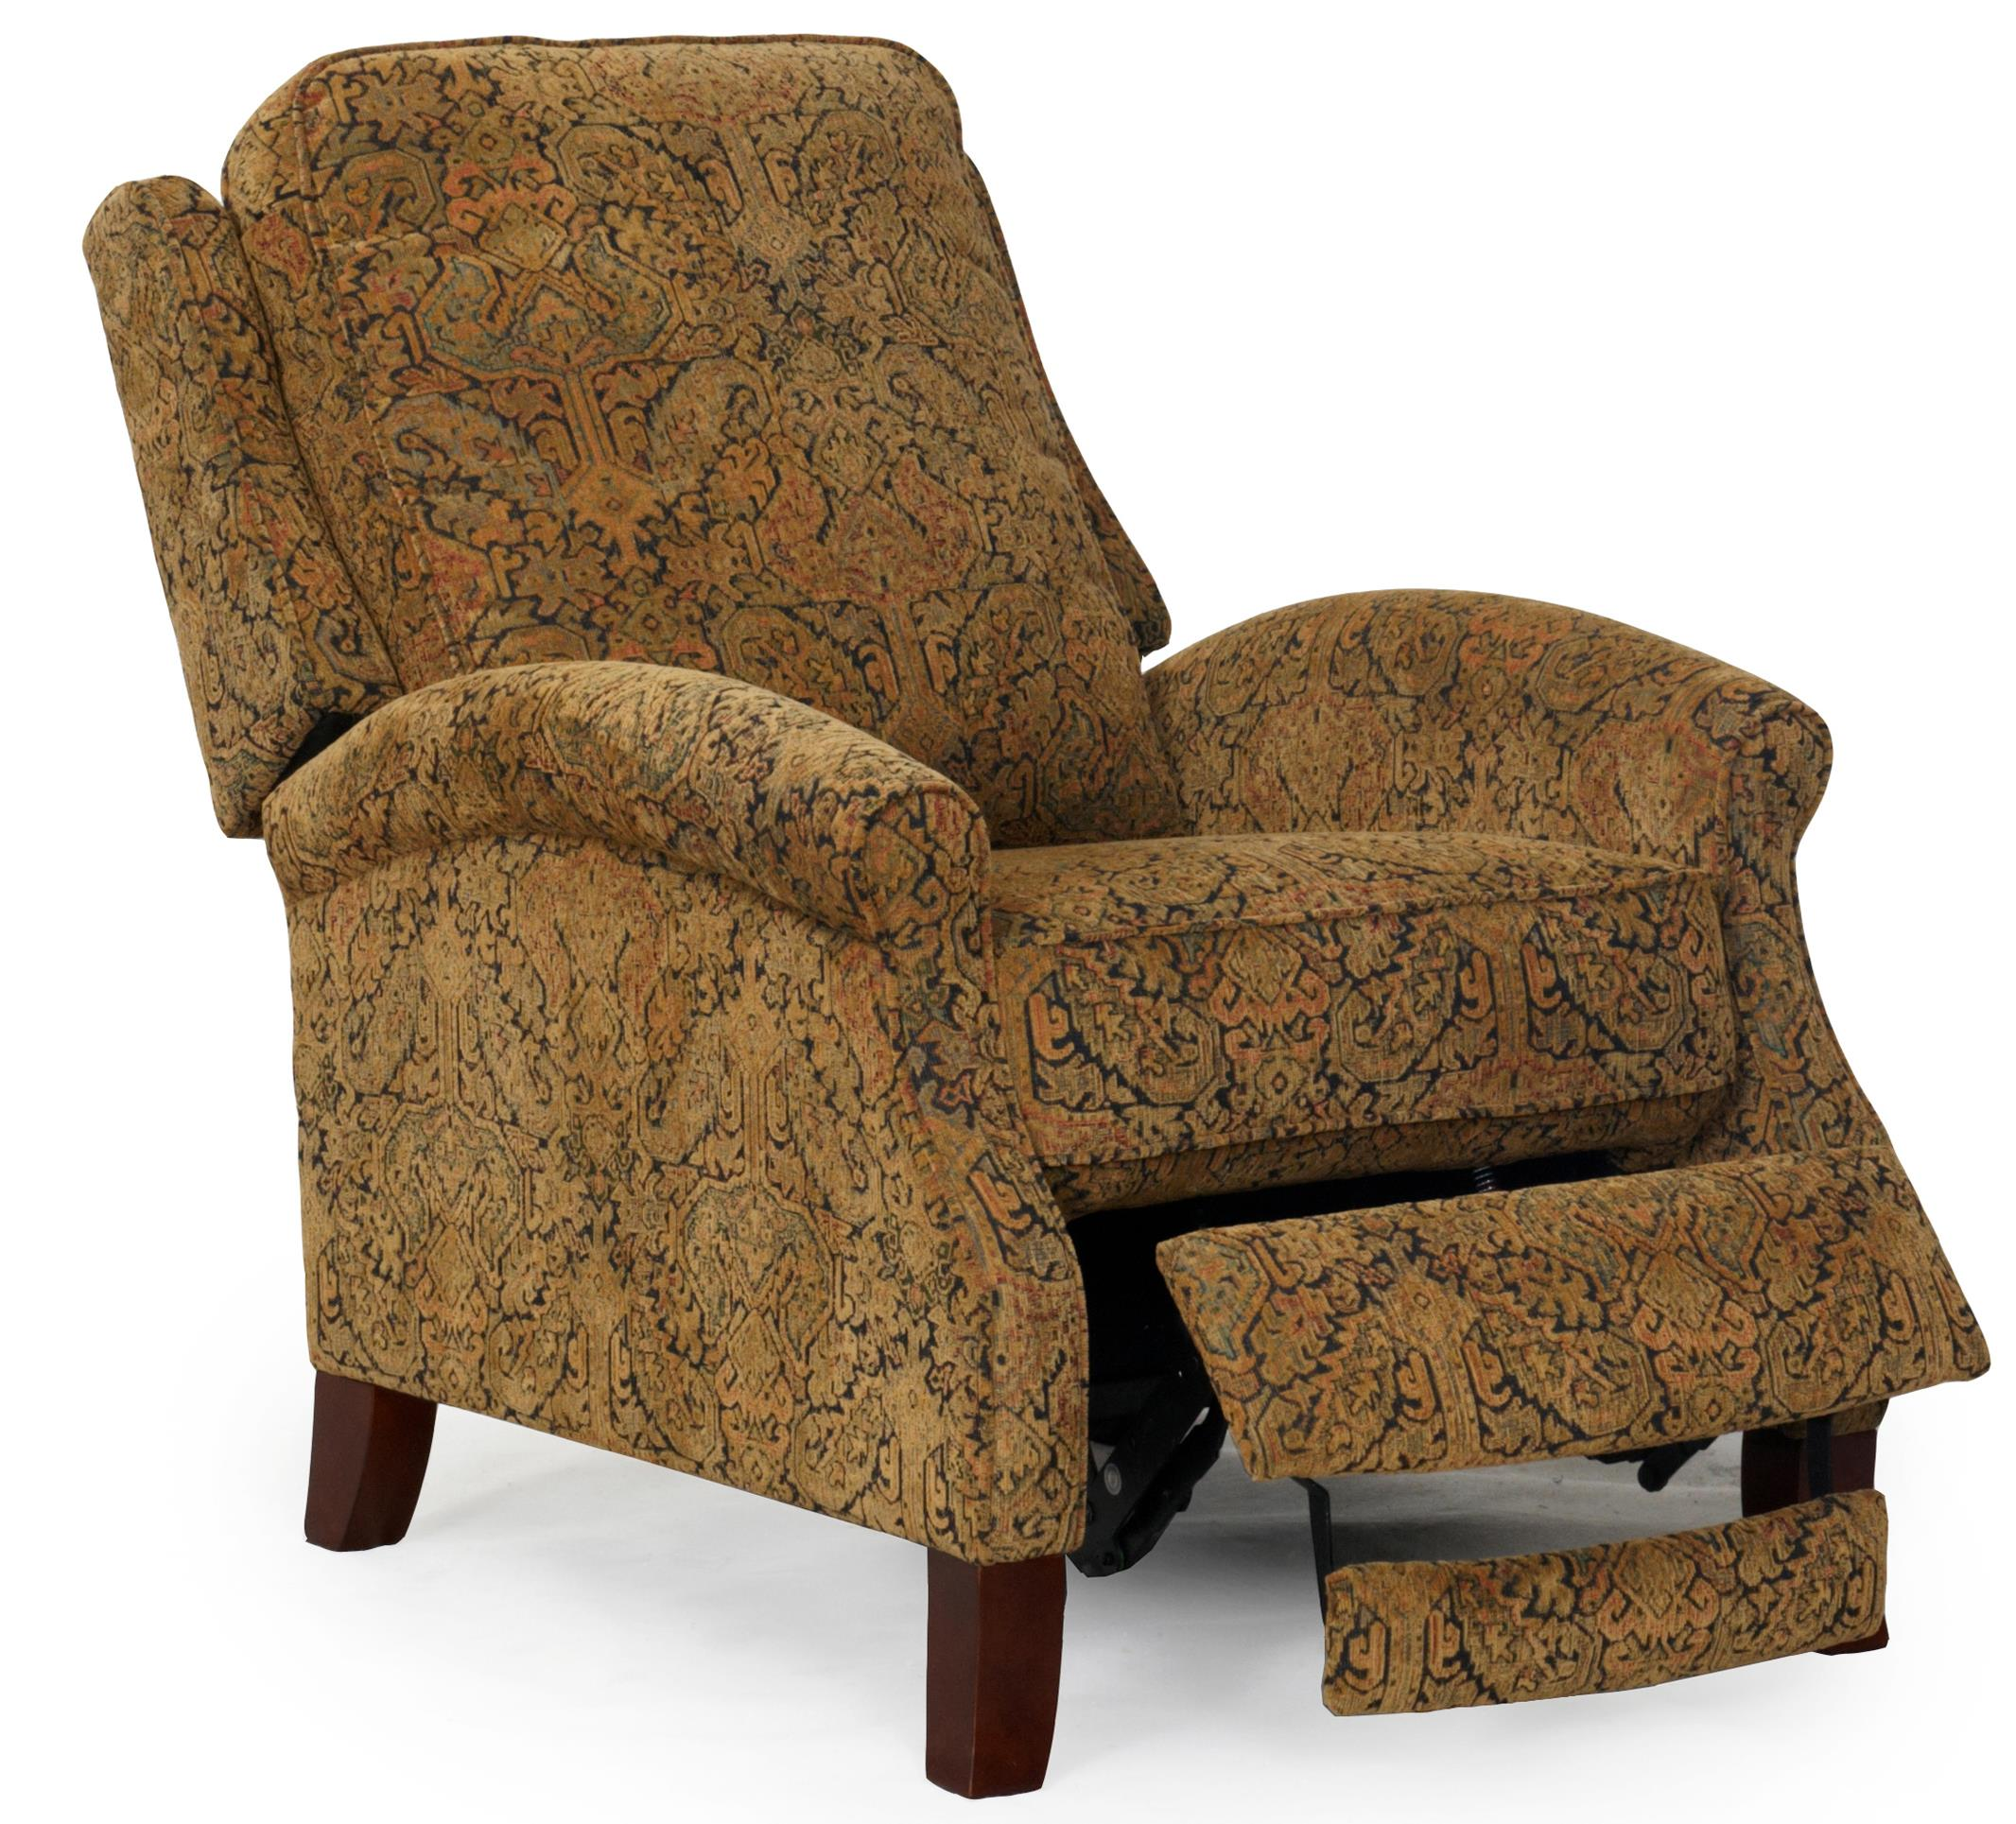 synergy recliner chair oak side chairs home furnishings 1267 86 3 way push back